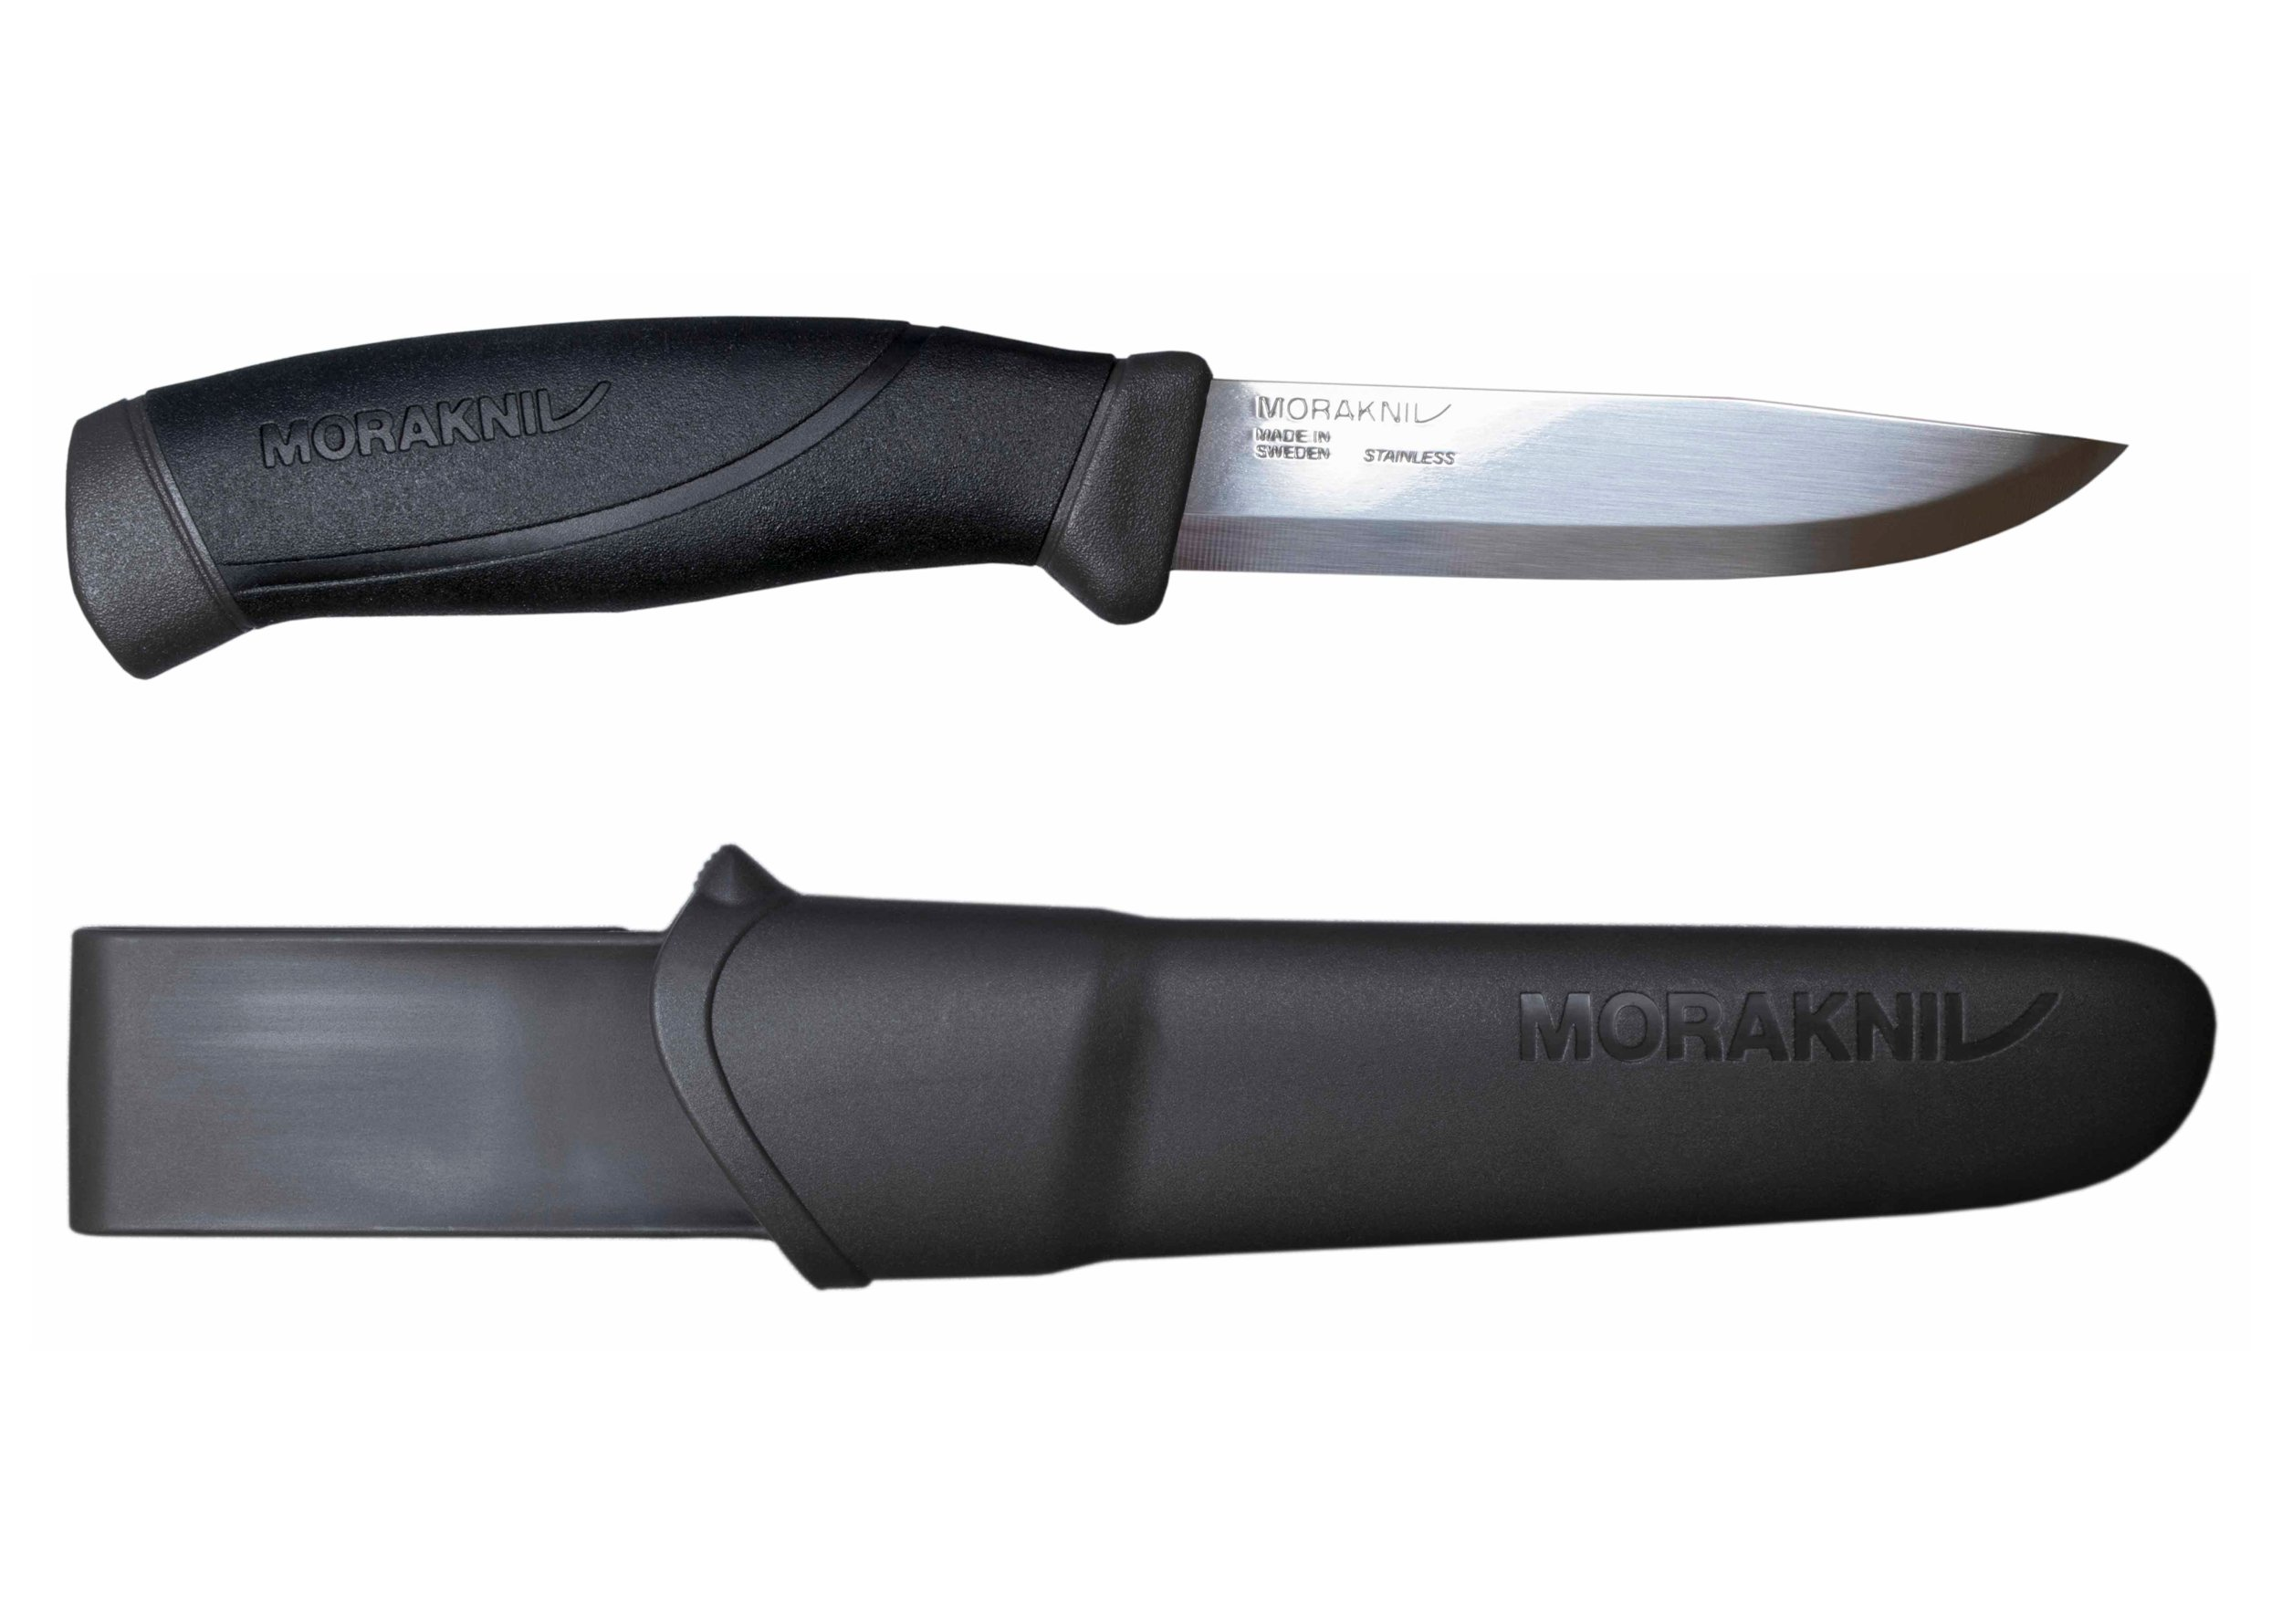 Morakniv Companion Fixed Blade Outdoor Knife with Sandvik Stainless Steel Blade, 4.1-Inch, Anthracite (Gray)